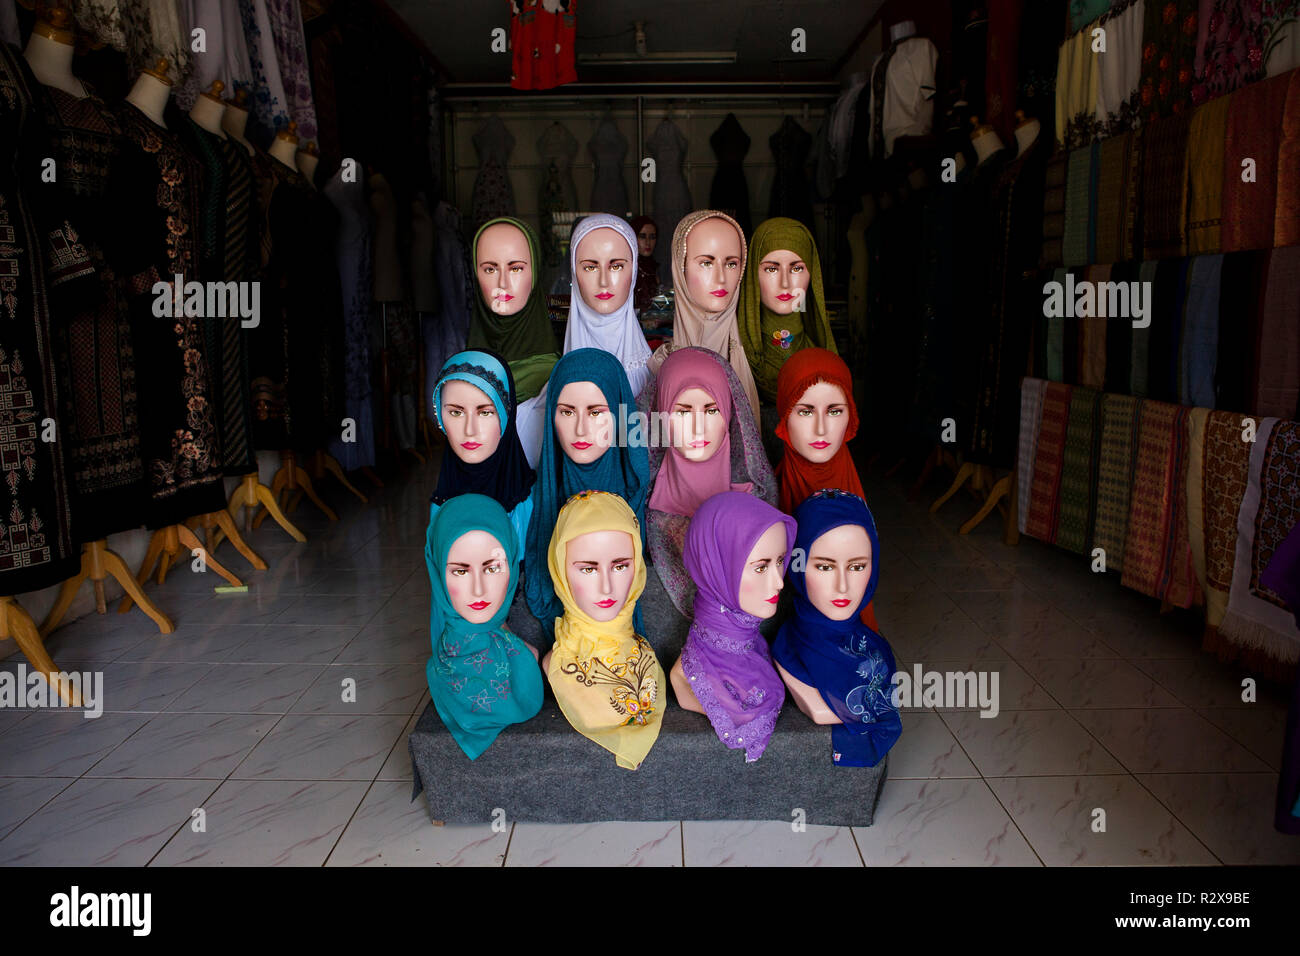 Hijabs for sale in Sumatra, Indonesia. - Stock Image